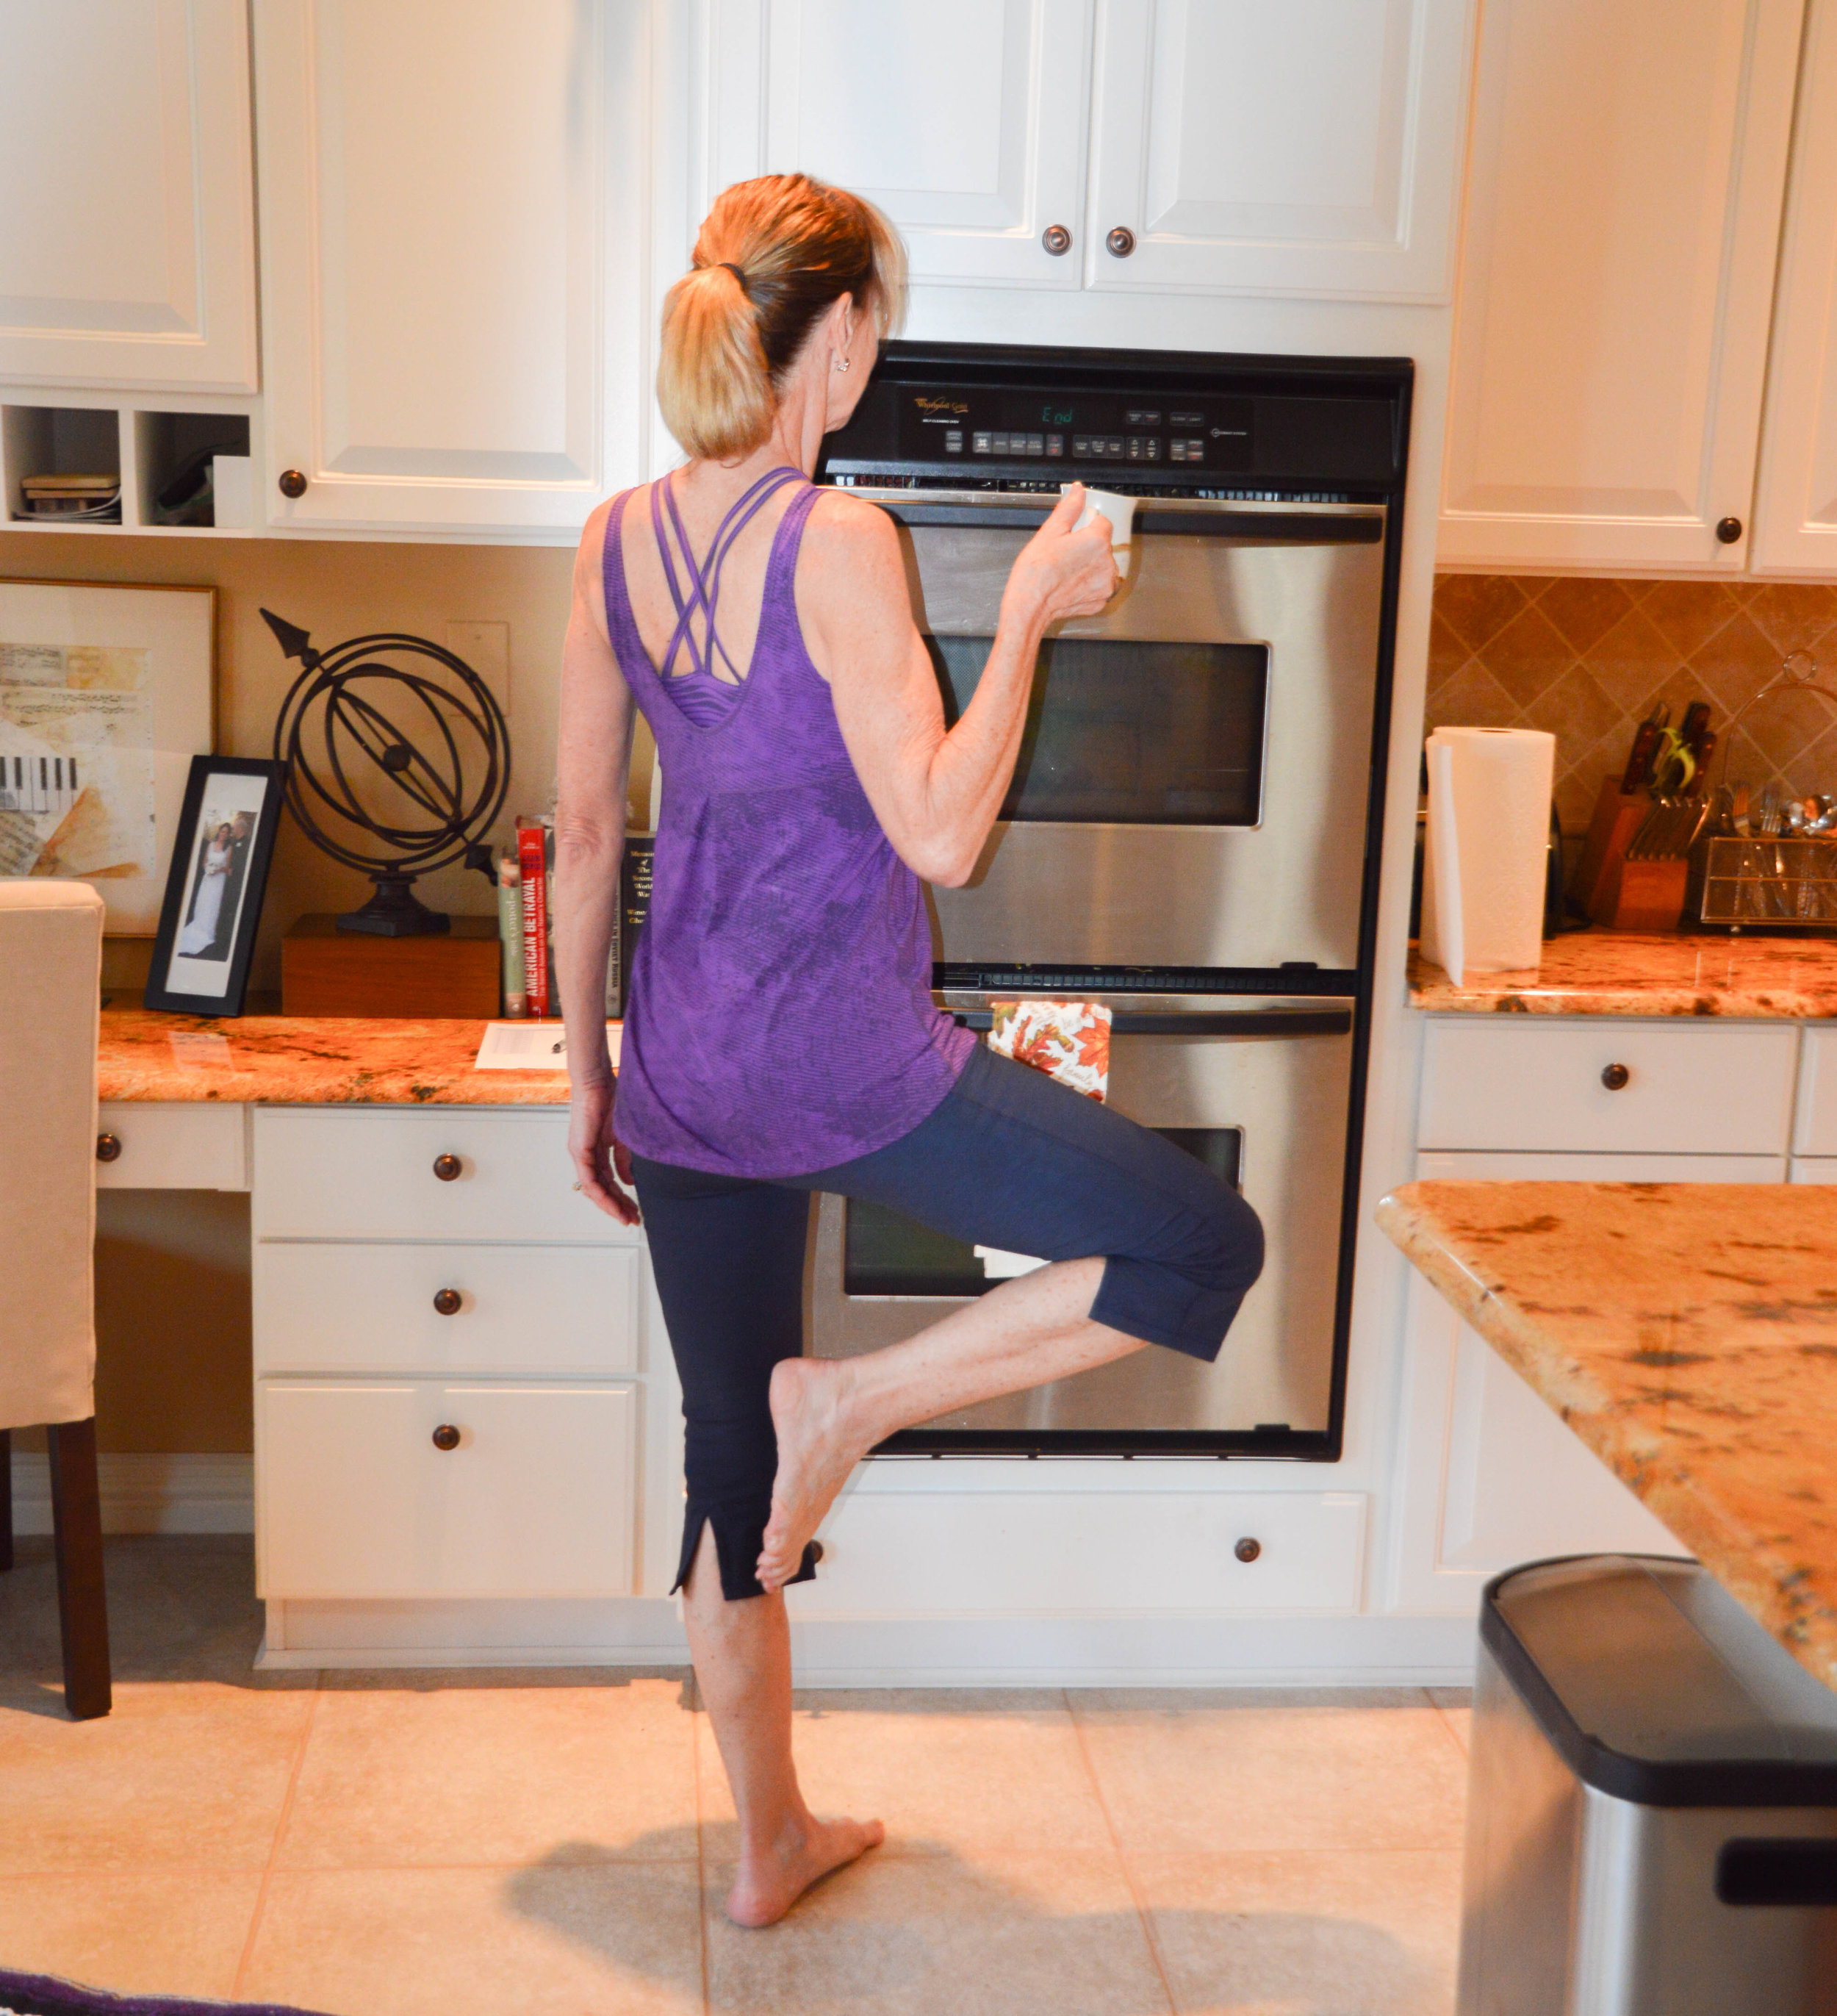 Find Balance in your day in little ways! How about Tree Pose while waiting for your coffee?